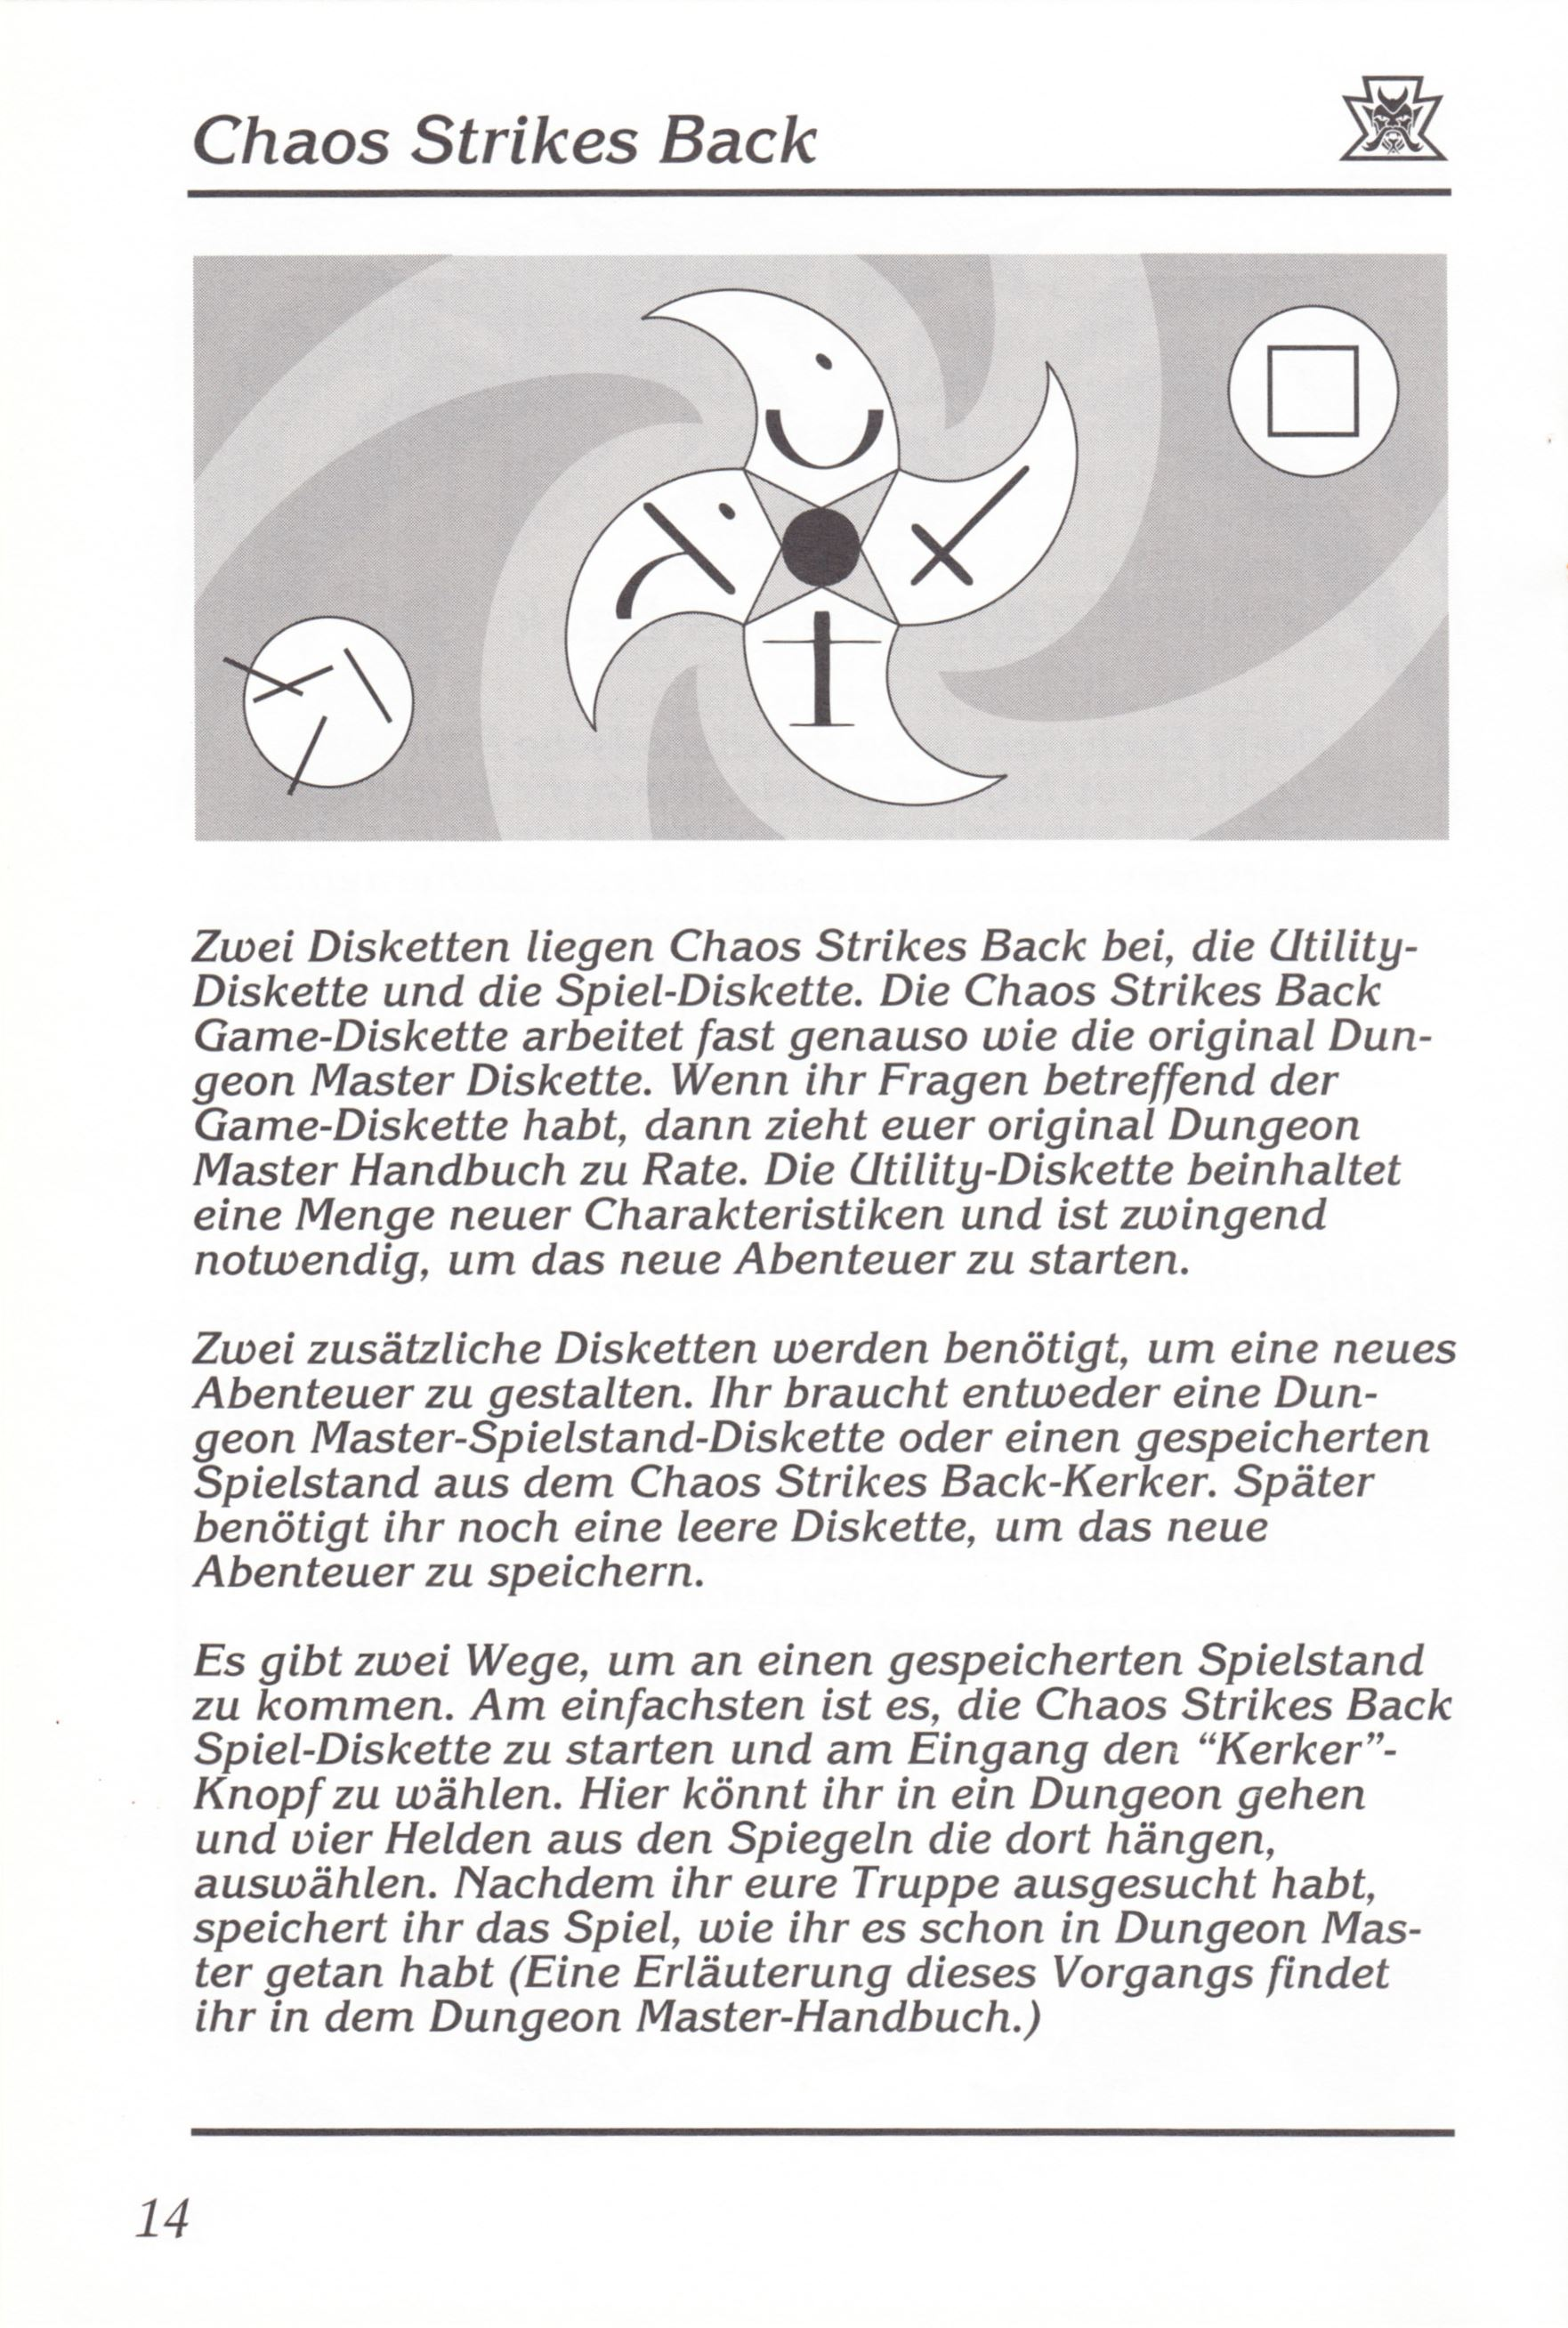 Game - Chaos Strikes Back - DE - Amiga - Manual - Page 016 - Scan